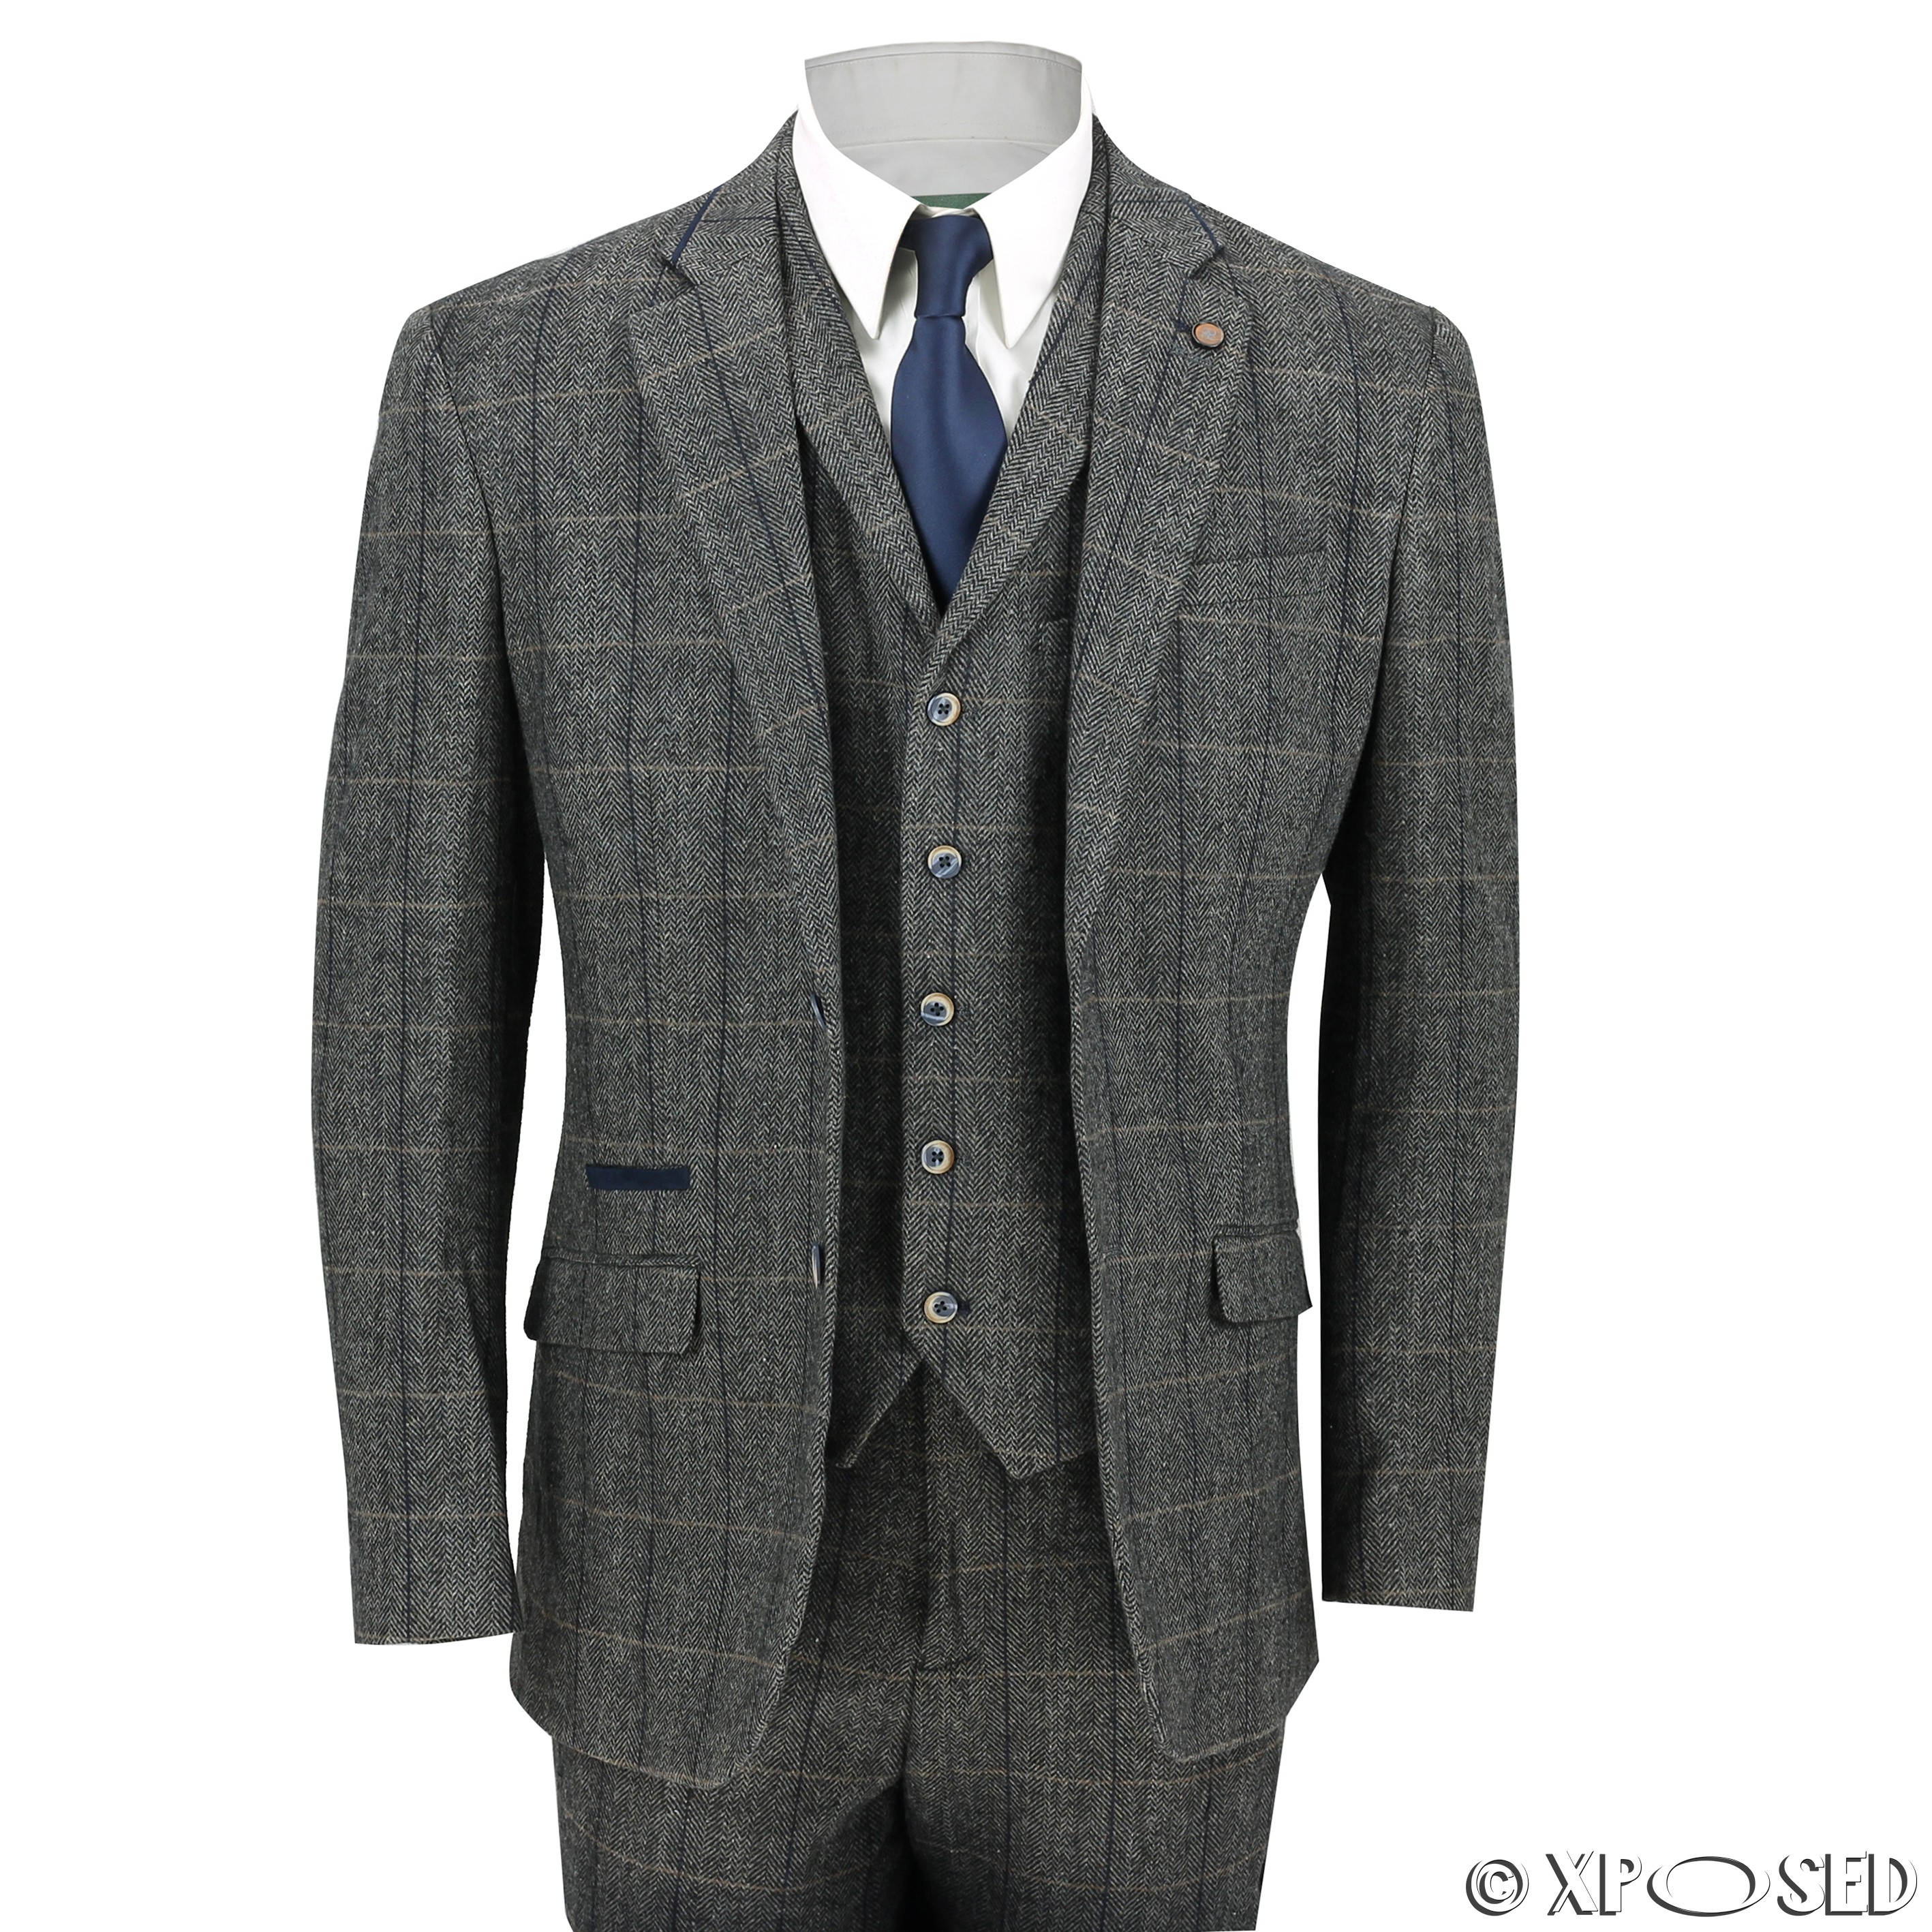 new cavani mens 3 piece tweed suit vintage herringbone grey check retro slim fit ebay. Black Bedroom Furniture Sets. Home Design Ideas